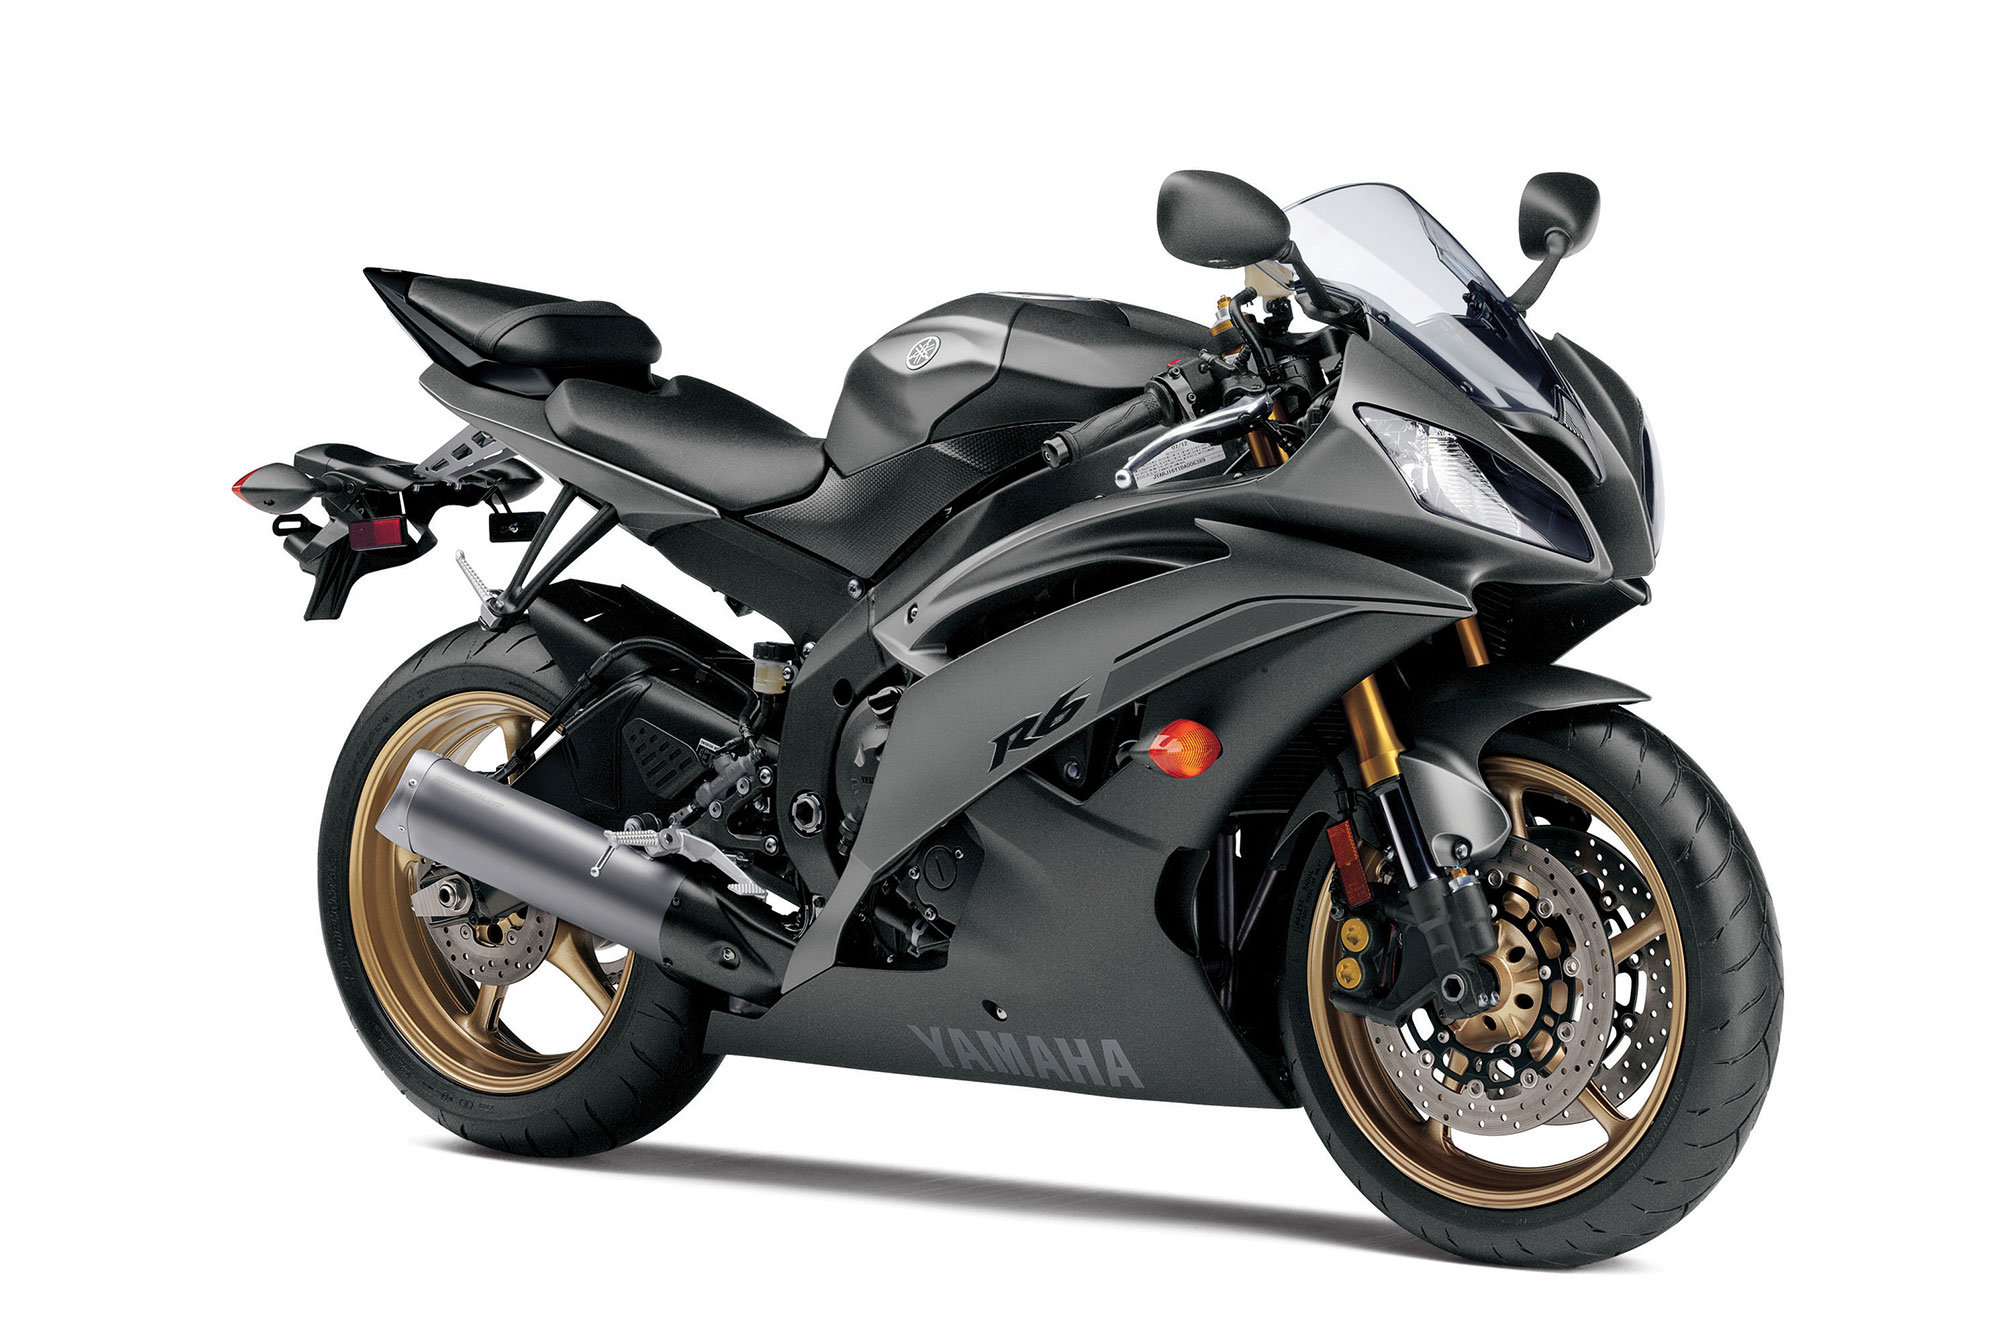 yamaha r6 black 2014 - photo #2